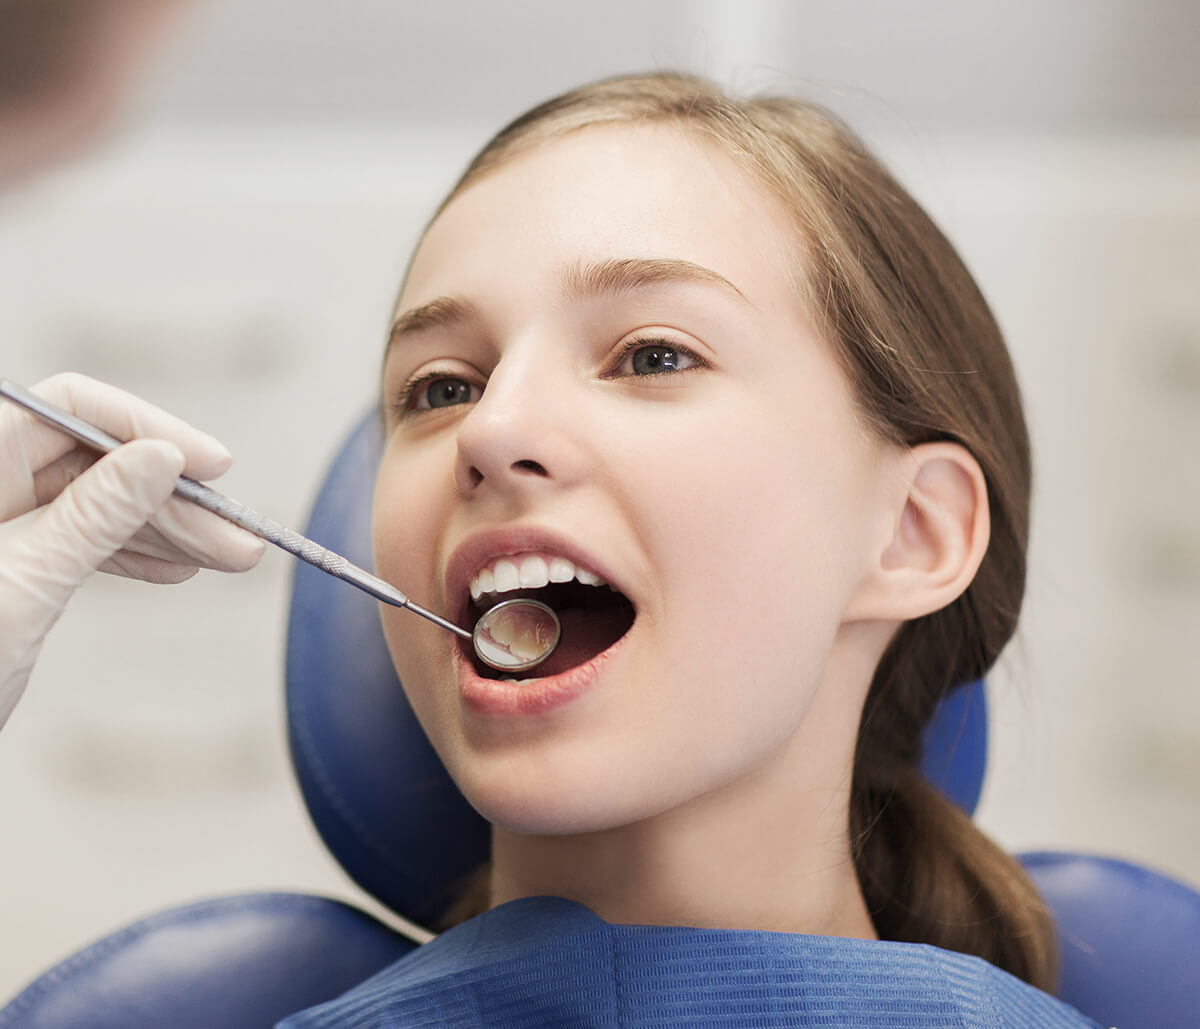 Kids Teeth Cleaning at Triad Pediatric Dentistry in Greensboro NC Area